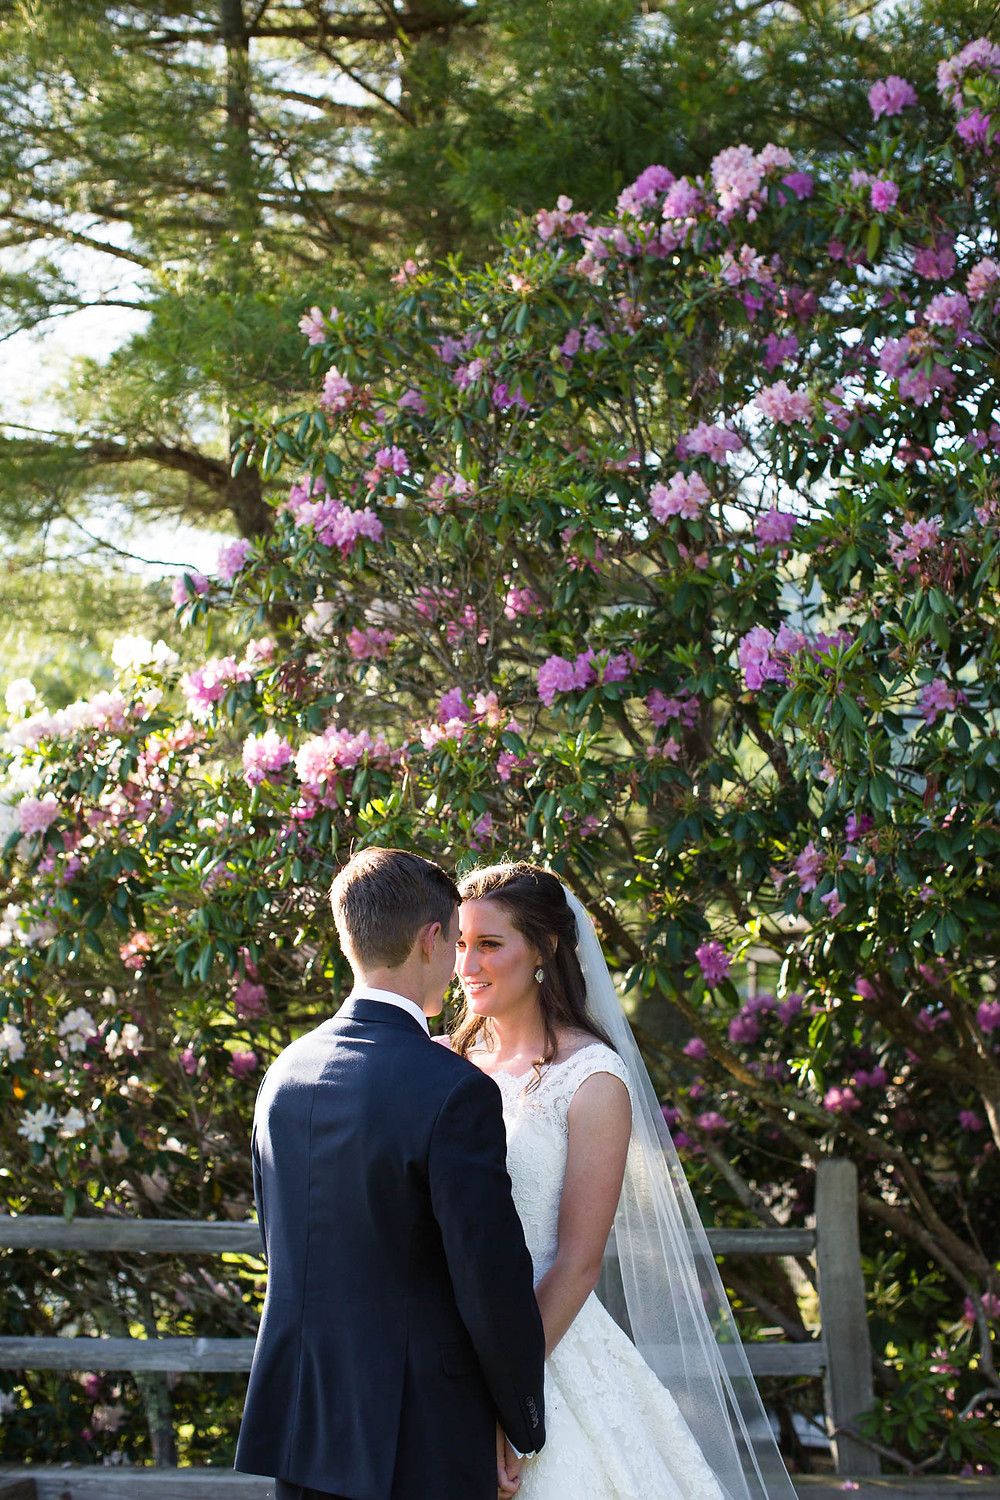 bride and groom portrait in front of floral tree